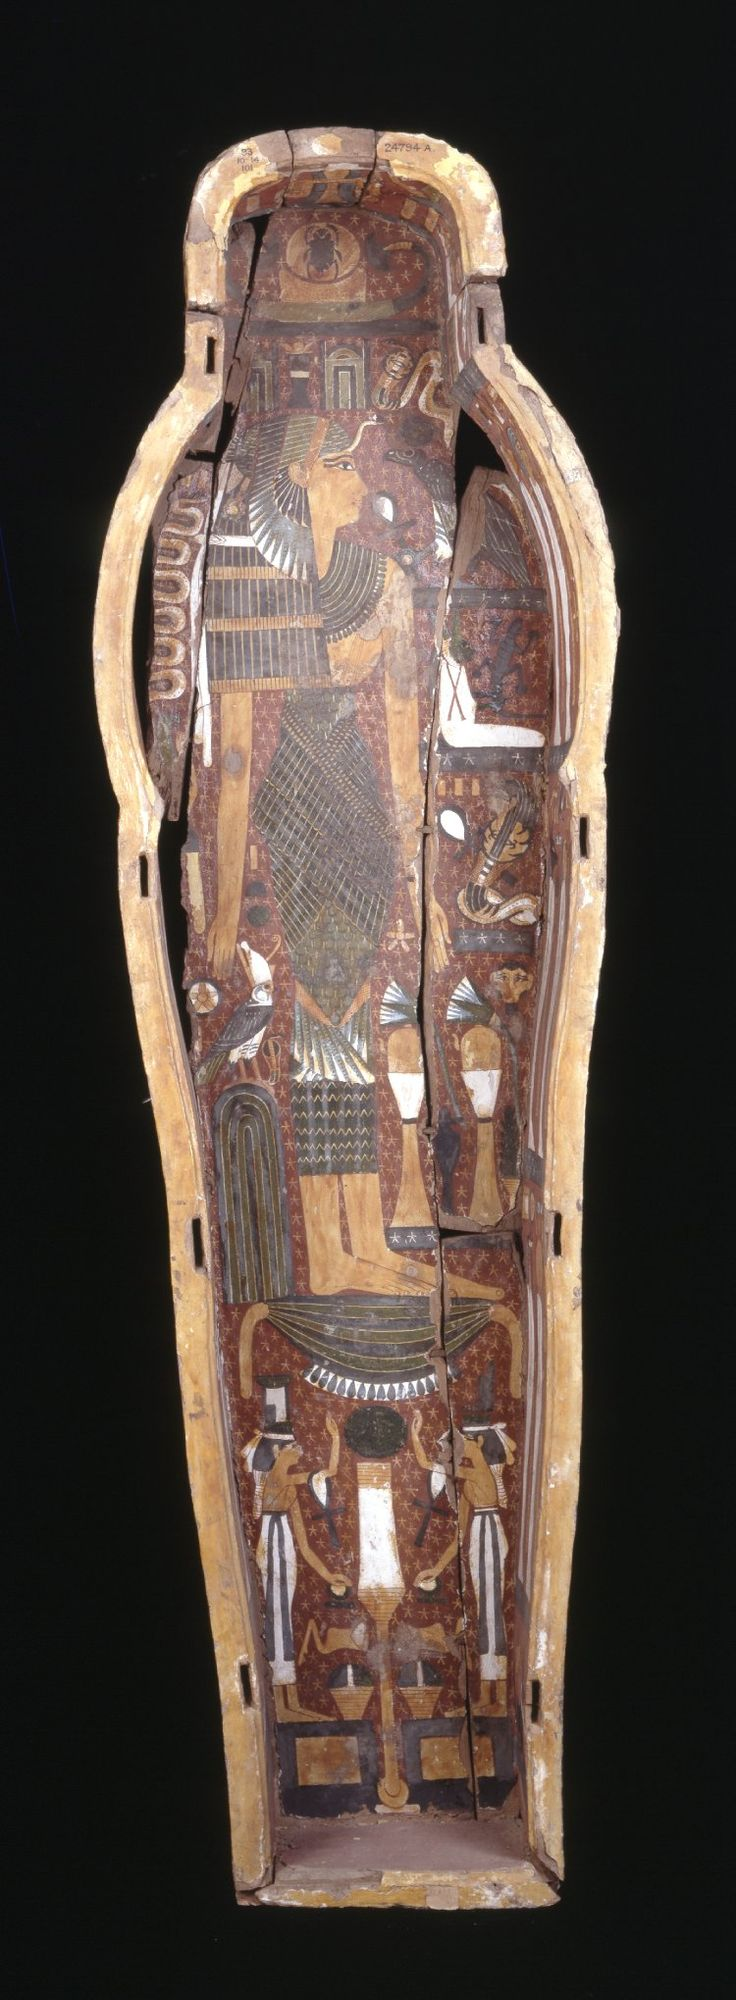 carbon dating egyptian mummies Radiocarbon dating of the mummies' hair confirmed these two sets of  ancient  tattoos have been found on egyptian mummies from about.